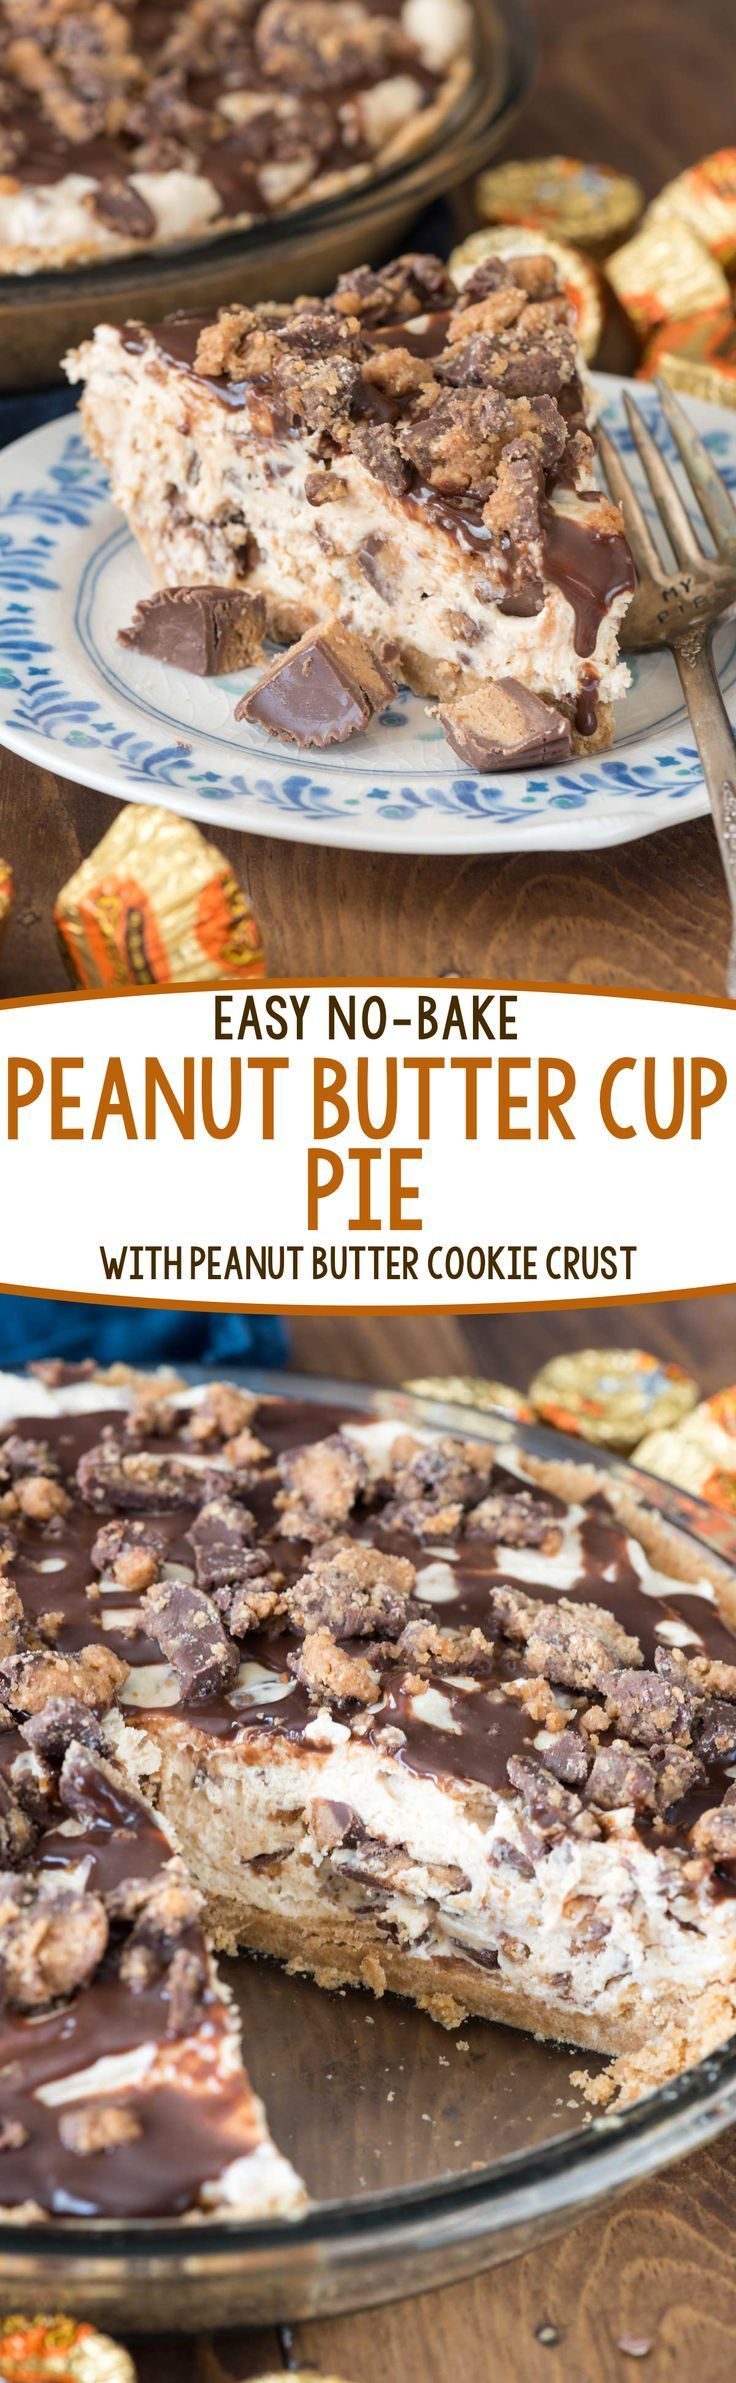 ... Peanut Butter Cup Pie - this AMAZING pie recipe has a NUTTER BUTTER